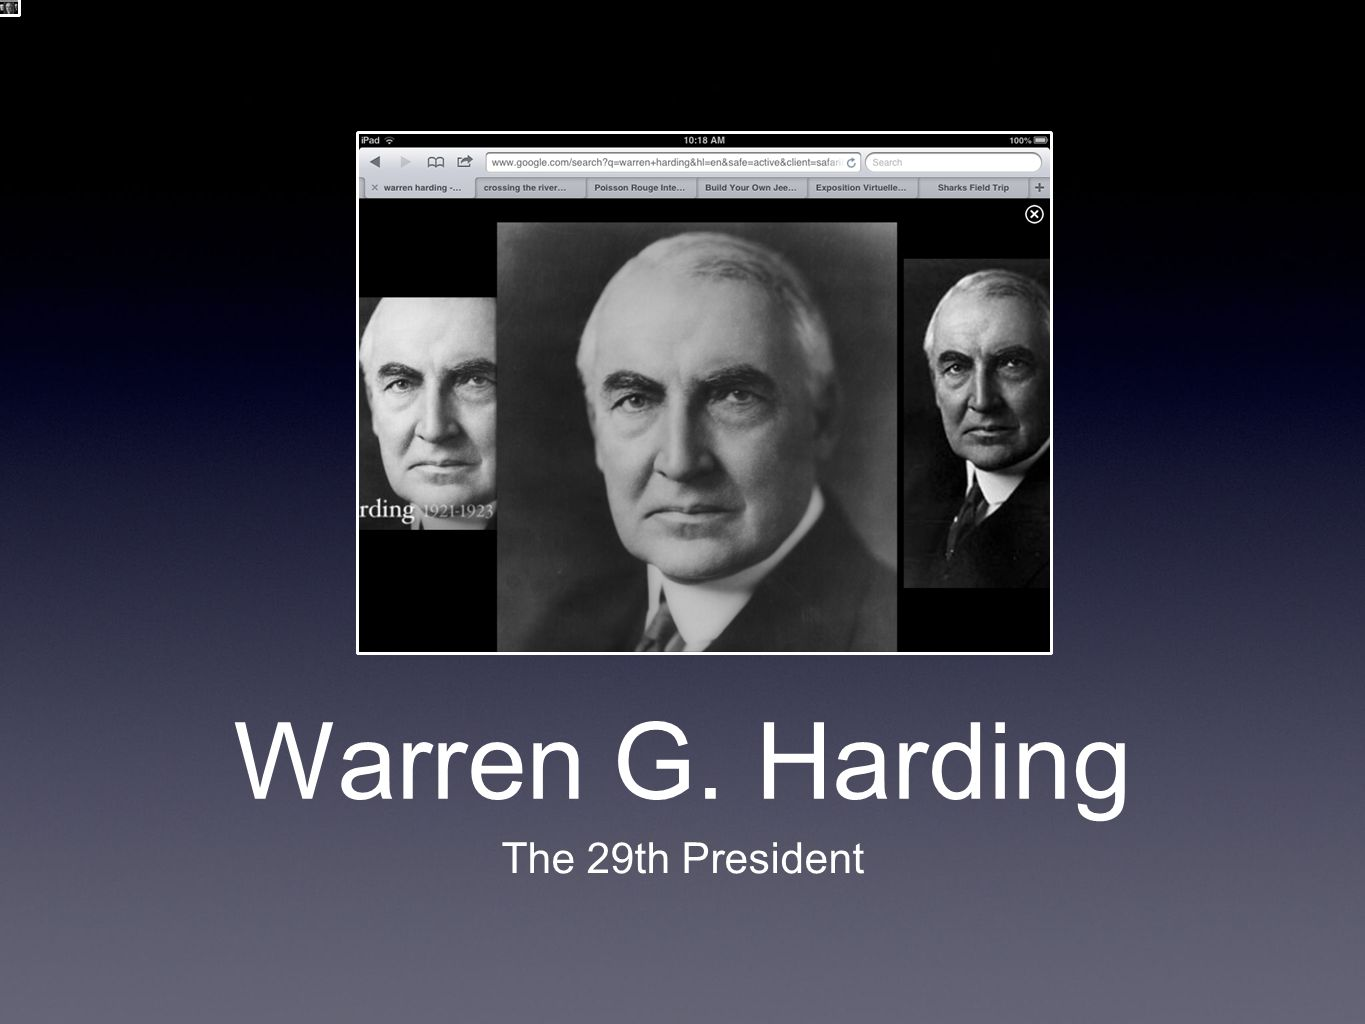 Warren G. Harding The 29th President